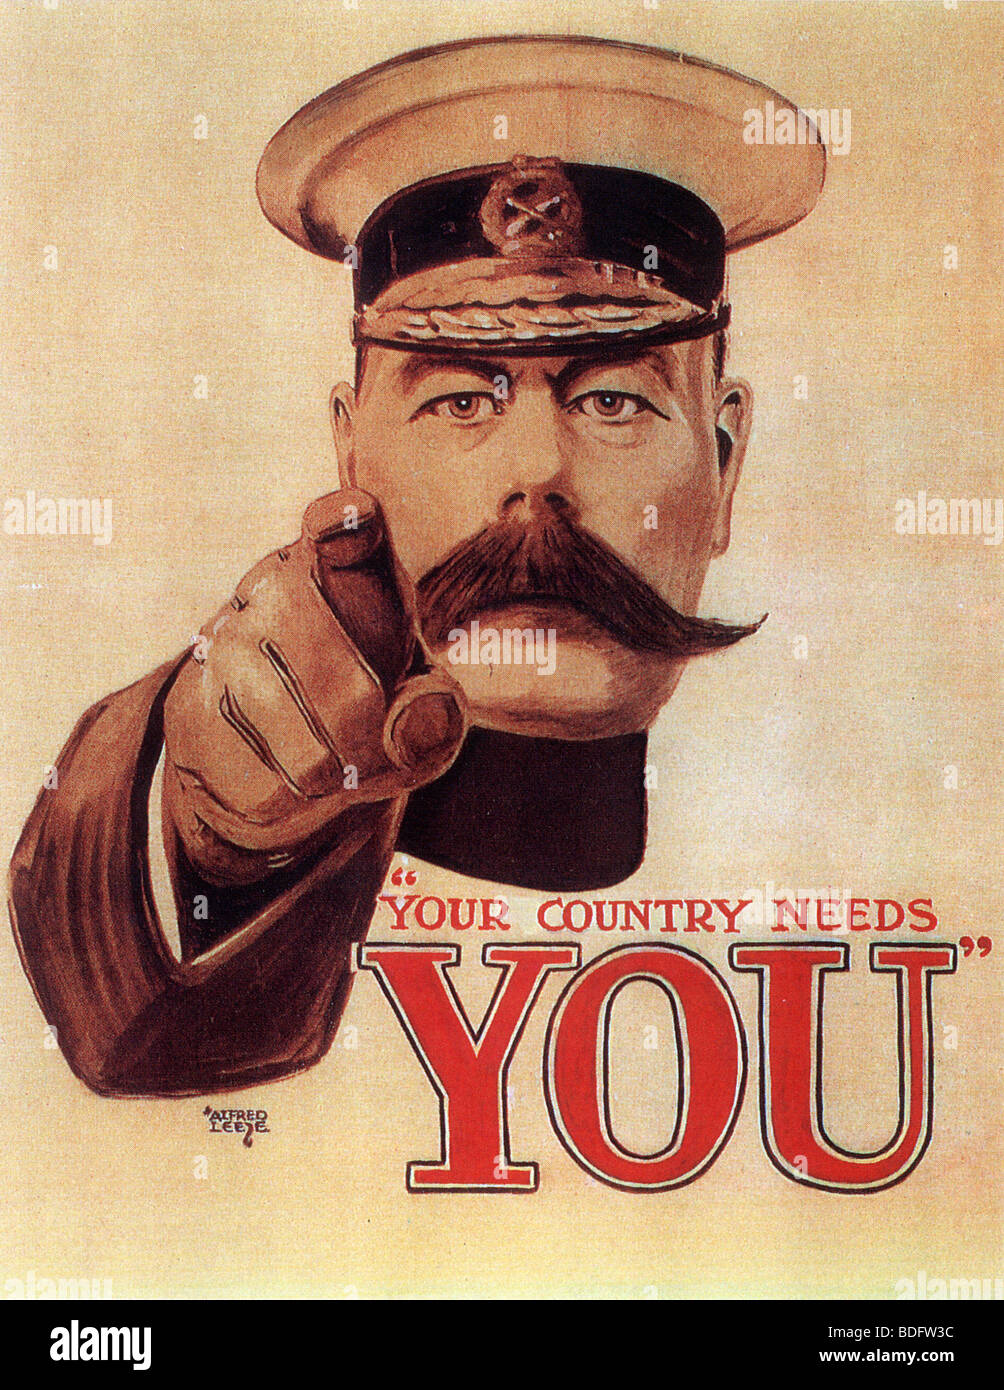 YOUR COUNTRY NEEDS YOU  The original form of the famous 1914 British recruiting poster designed by Alfred Leete - Stock Image